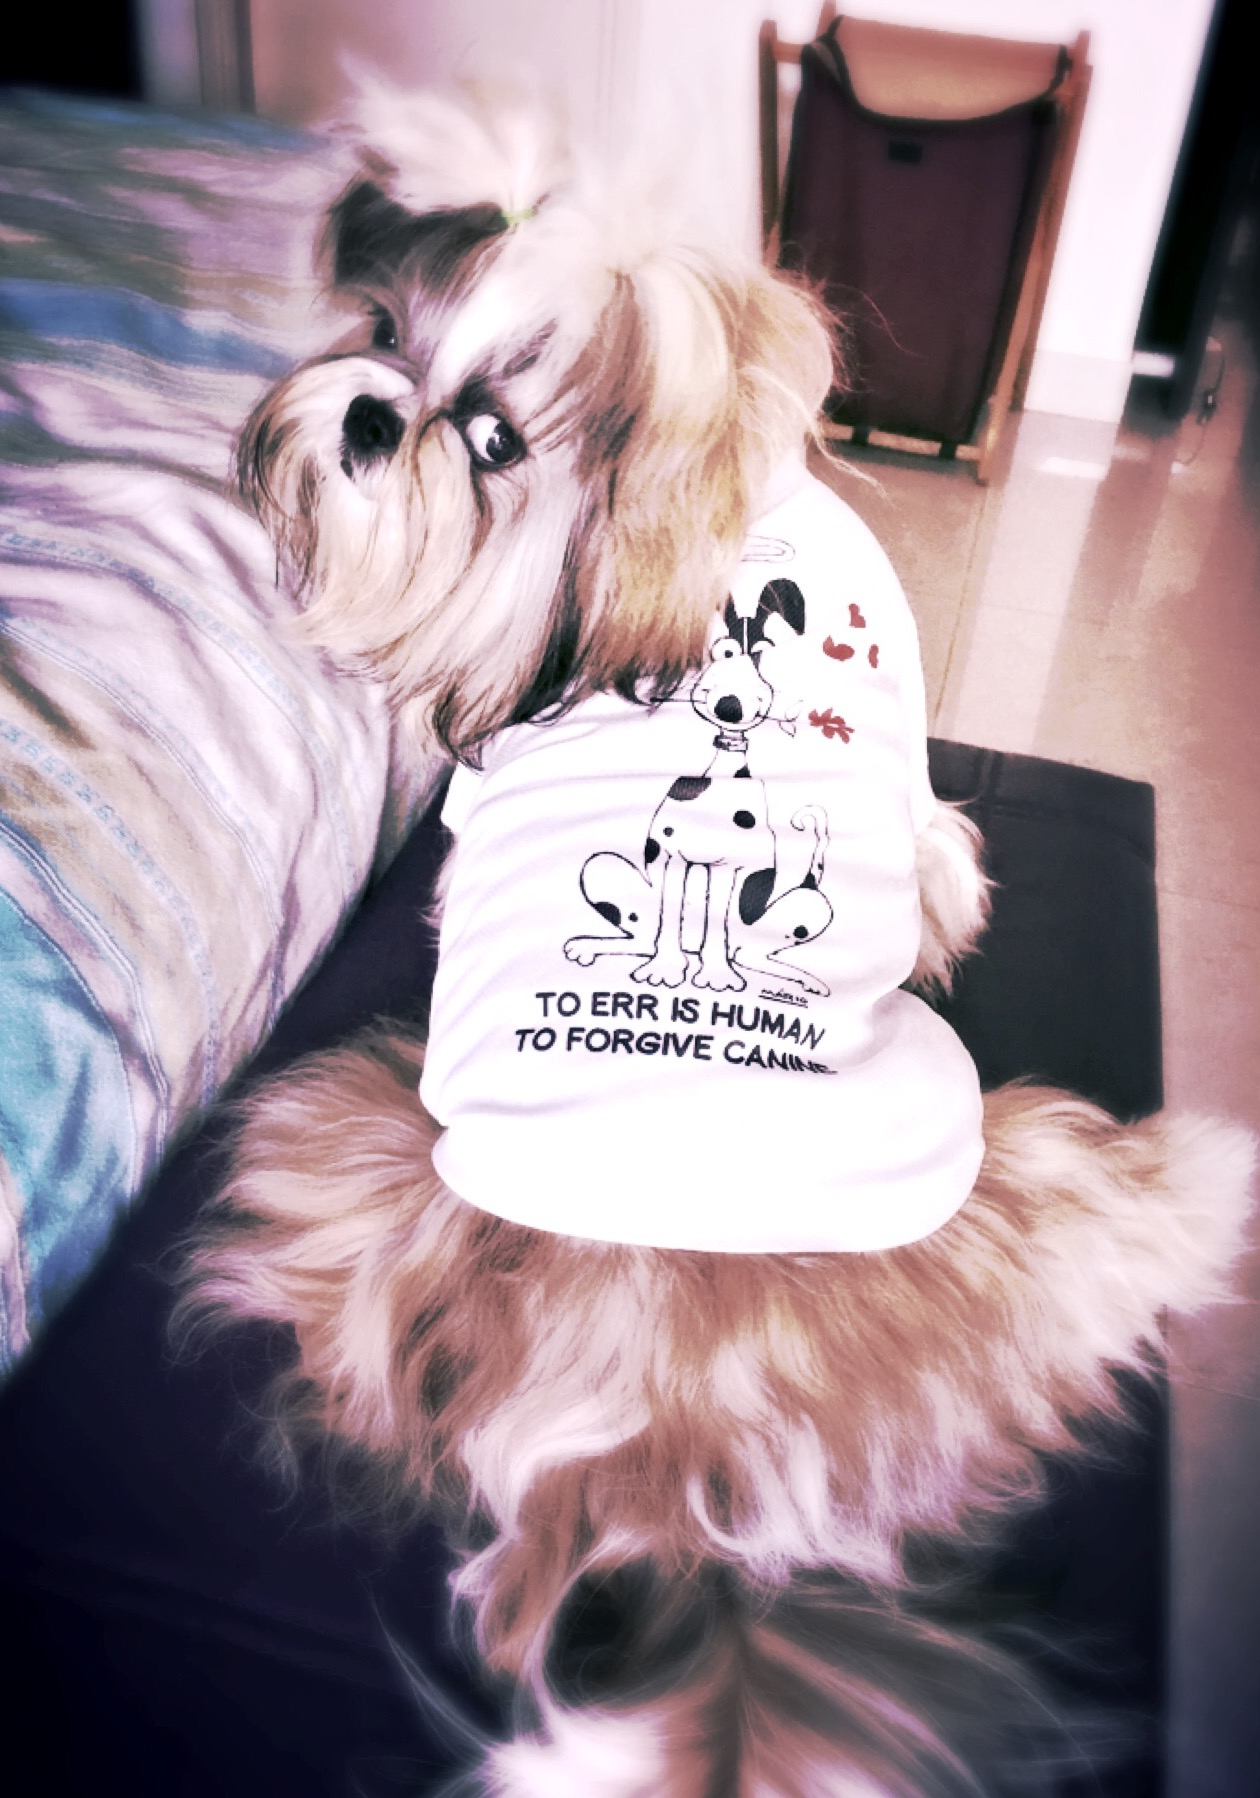 ed545b379afd Dr.Pompy wearing her favorite 'To err is human, to forgive is canine' t  shirt.